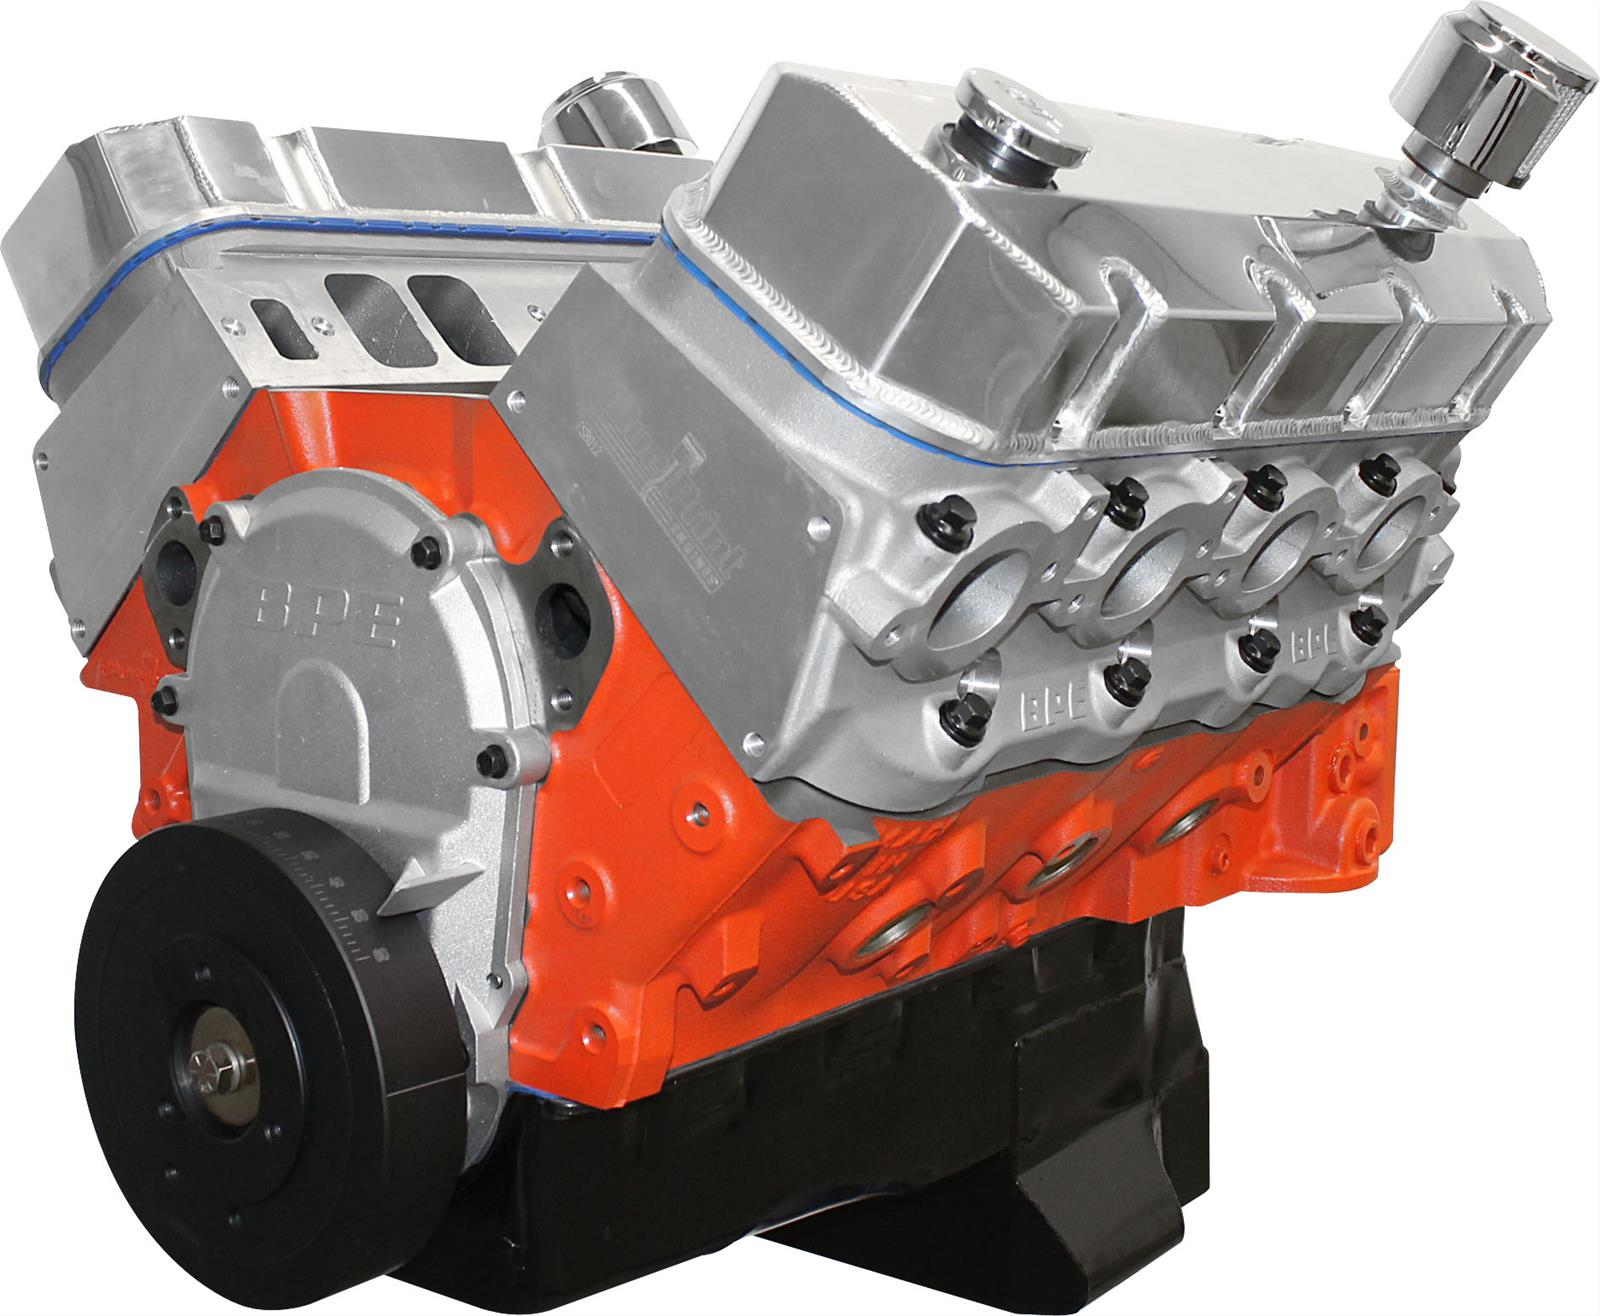 Blueprint engines pro series chevy 598 cid 724 hp base crate blueprint engines pro series chevy 598 cid 724 hp base crate engines ps5980ct1 free shipping on orders over 99 at summit racing malvernweather Choice Image